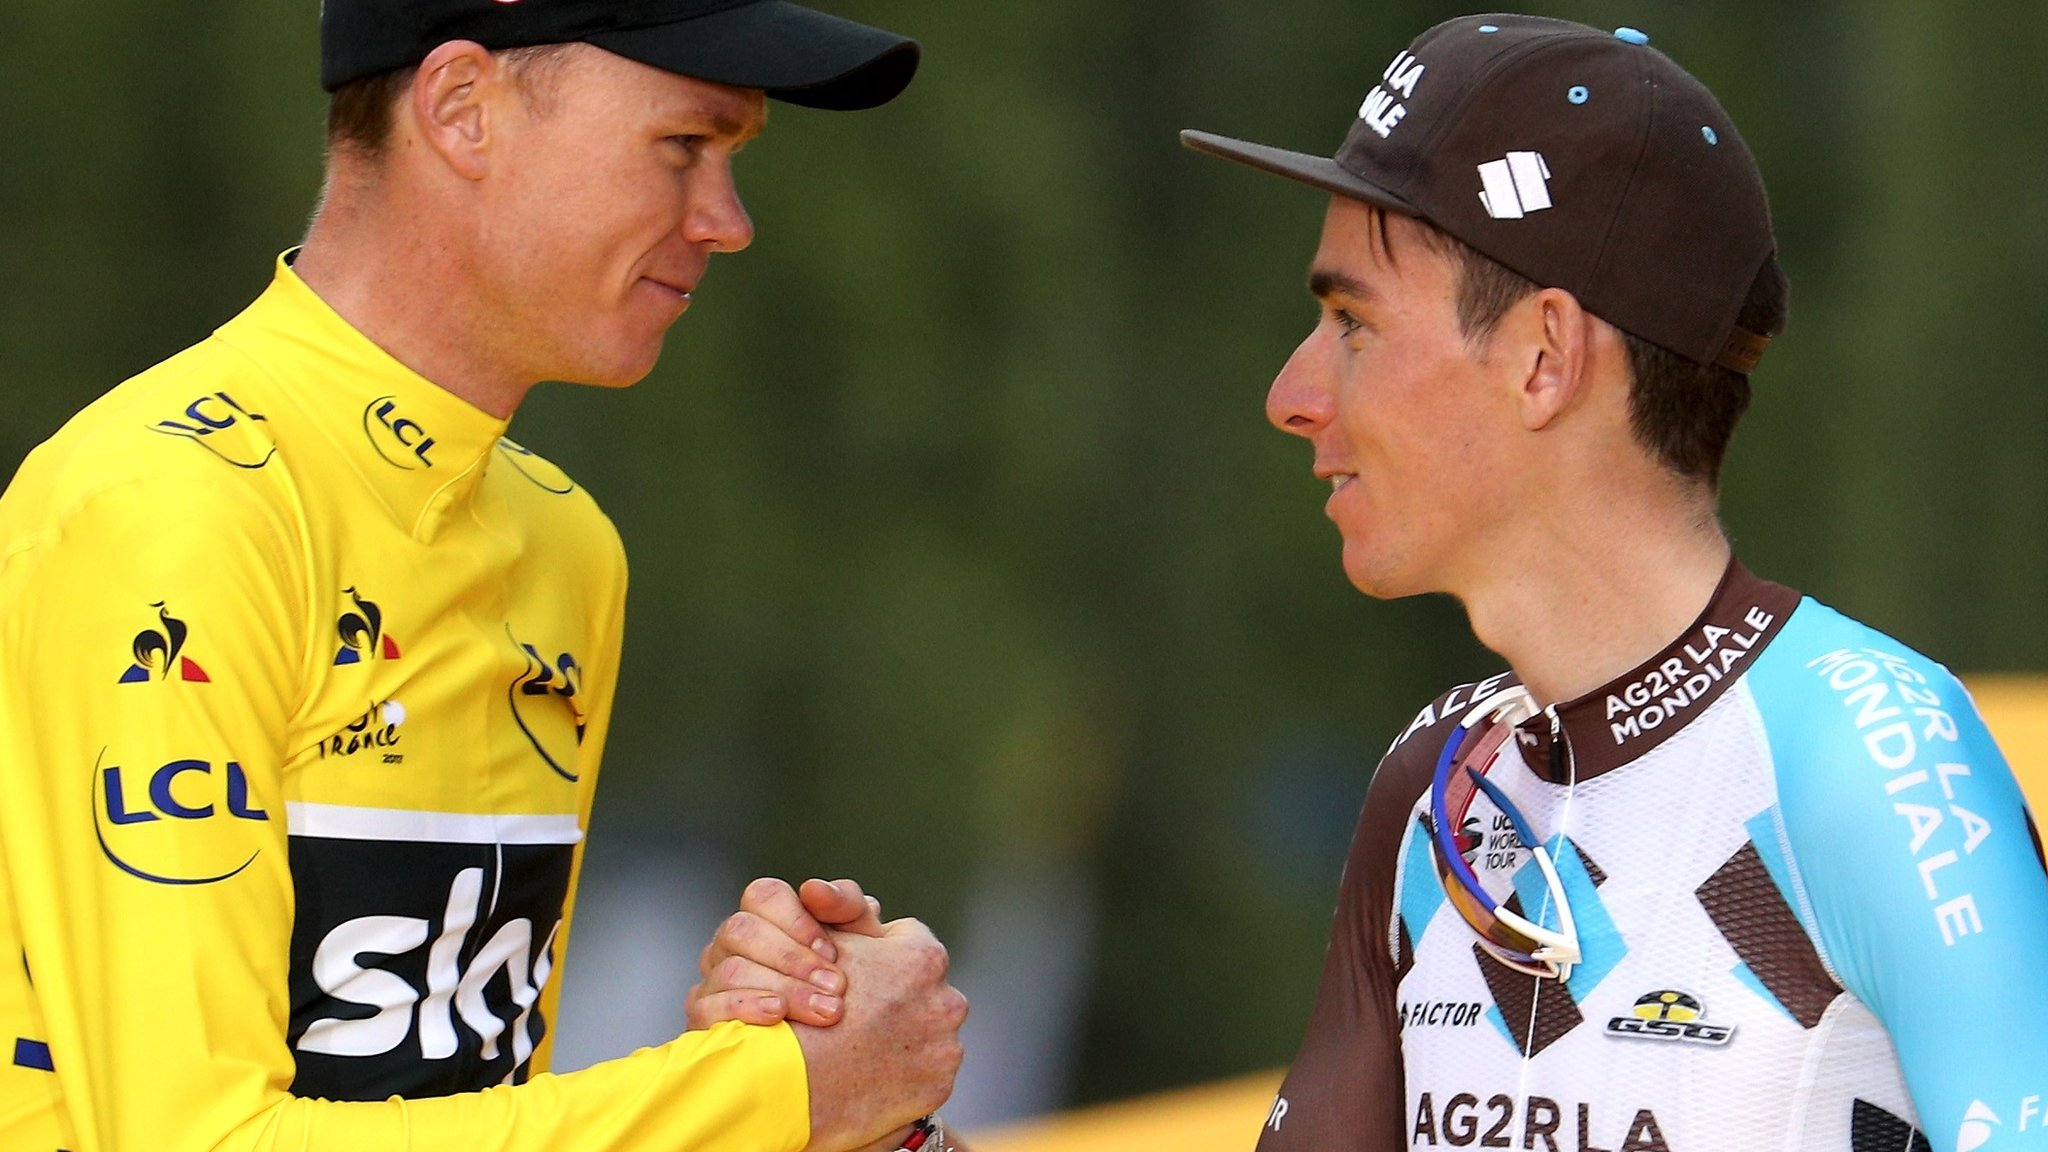 Vuelta a Espana 2017: Why Chris Froome starts the race as favourite